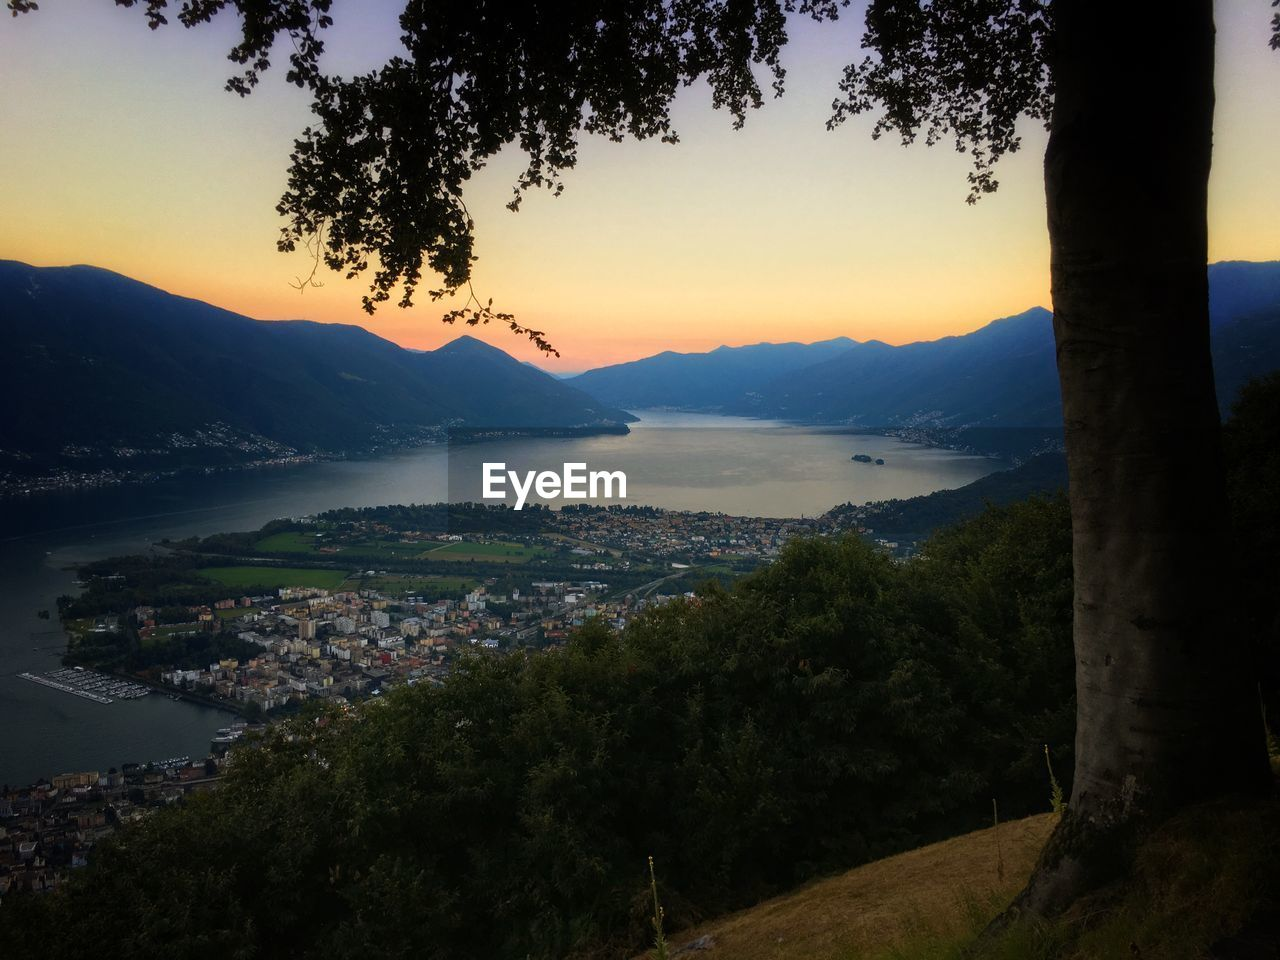 mountain, mountain range, tree, sunset, nature, scenics, water, sky, beauty in nature, no people, outdoors, tranquility, landscape, architecture, built structure, sea, growth, city, cityscape, building exterior, day